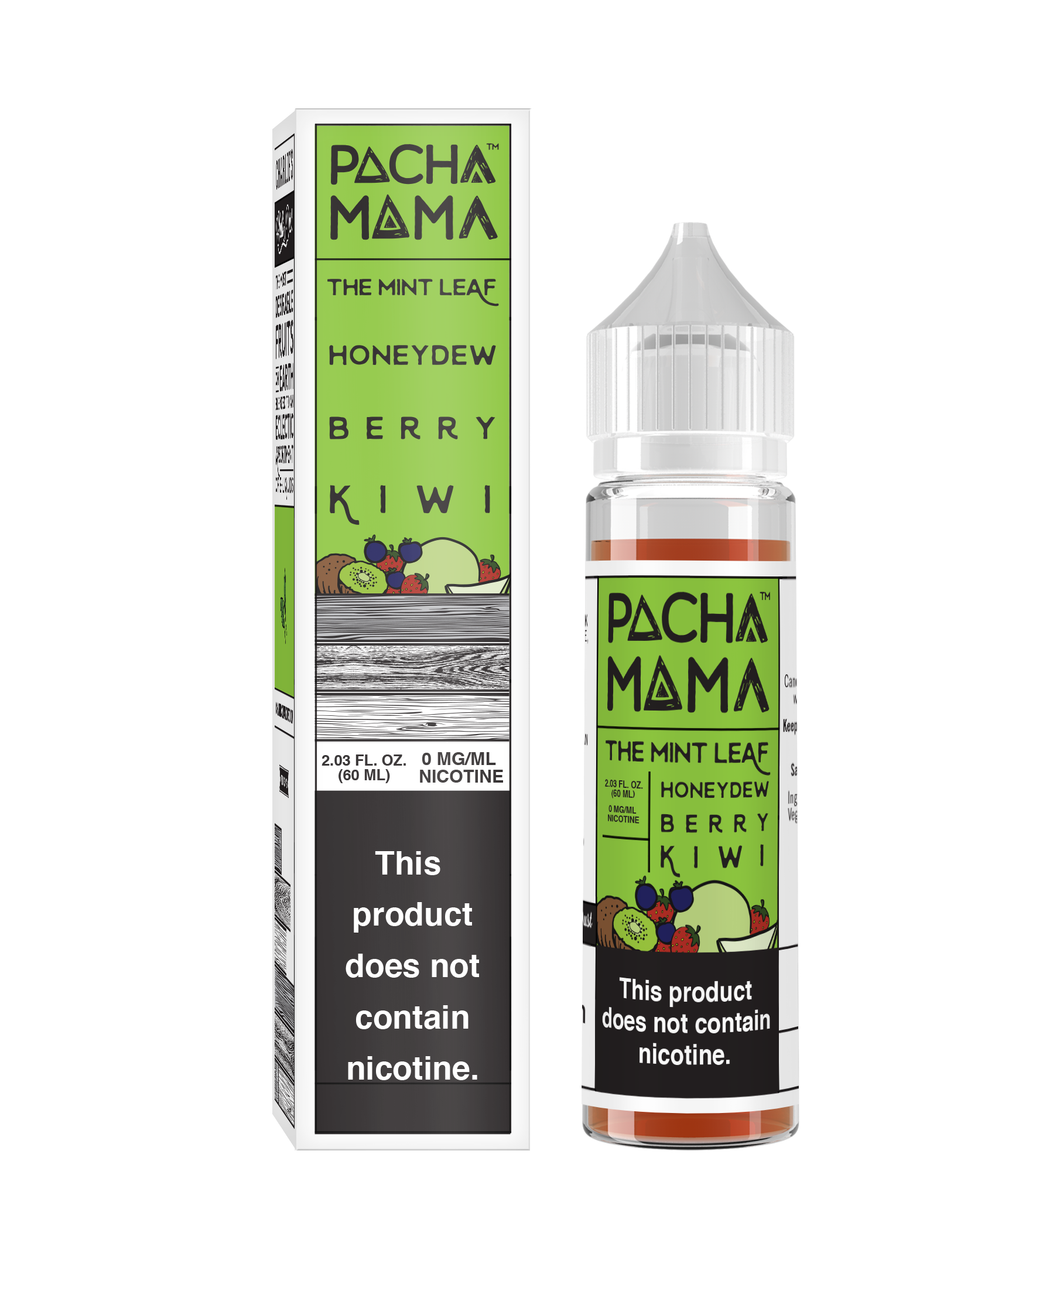 Pacha Mama: The Mint Leaf Honeydew Berry Kiwi